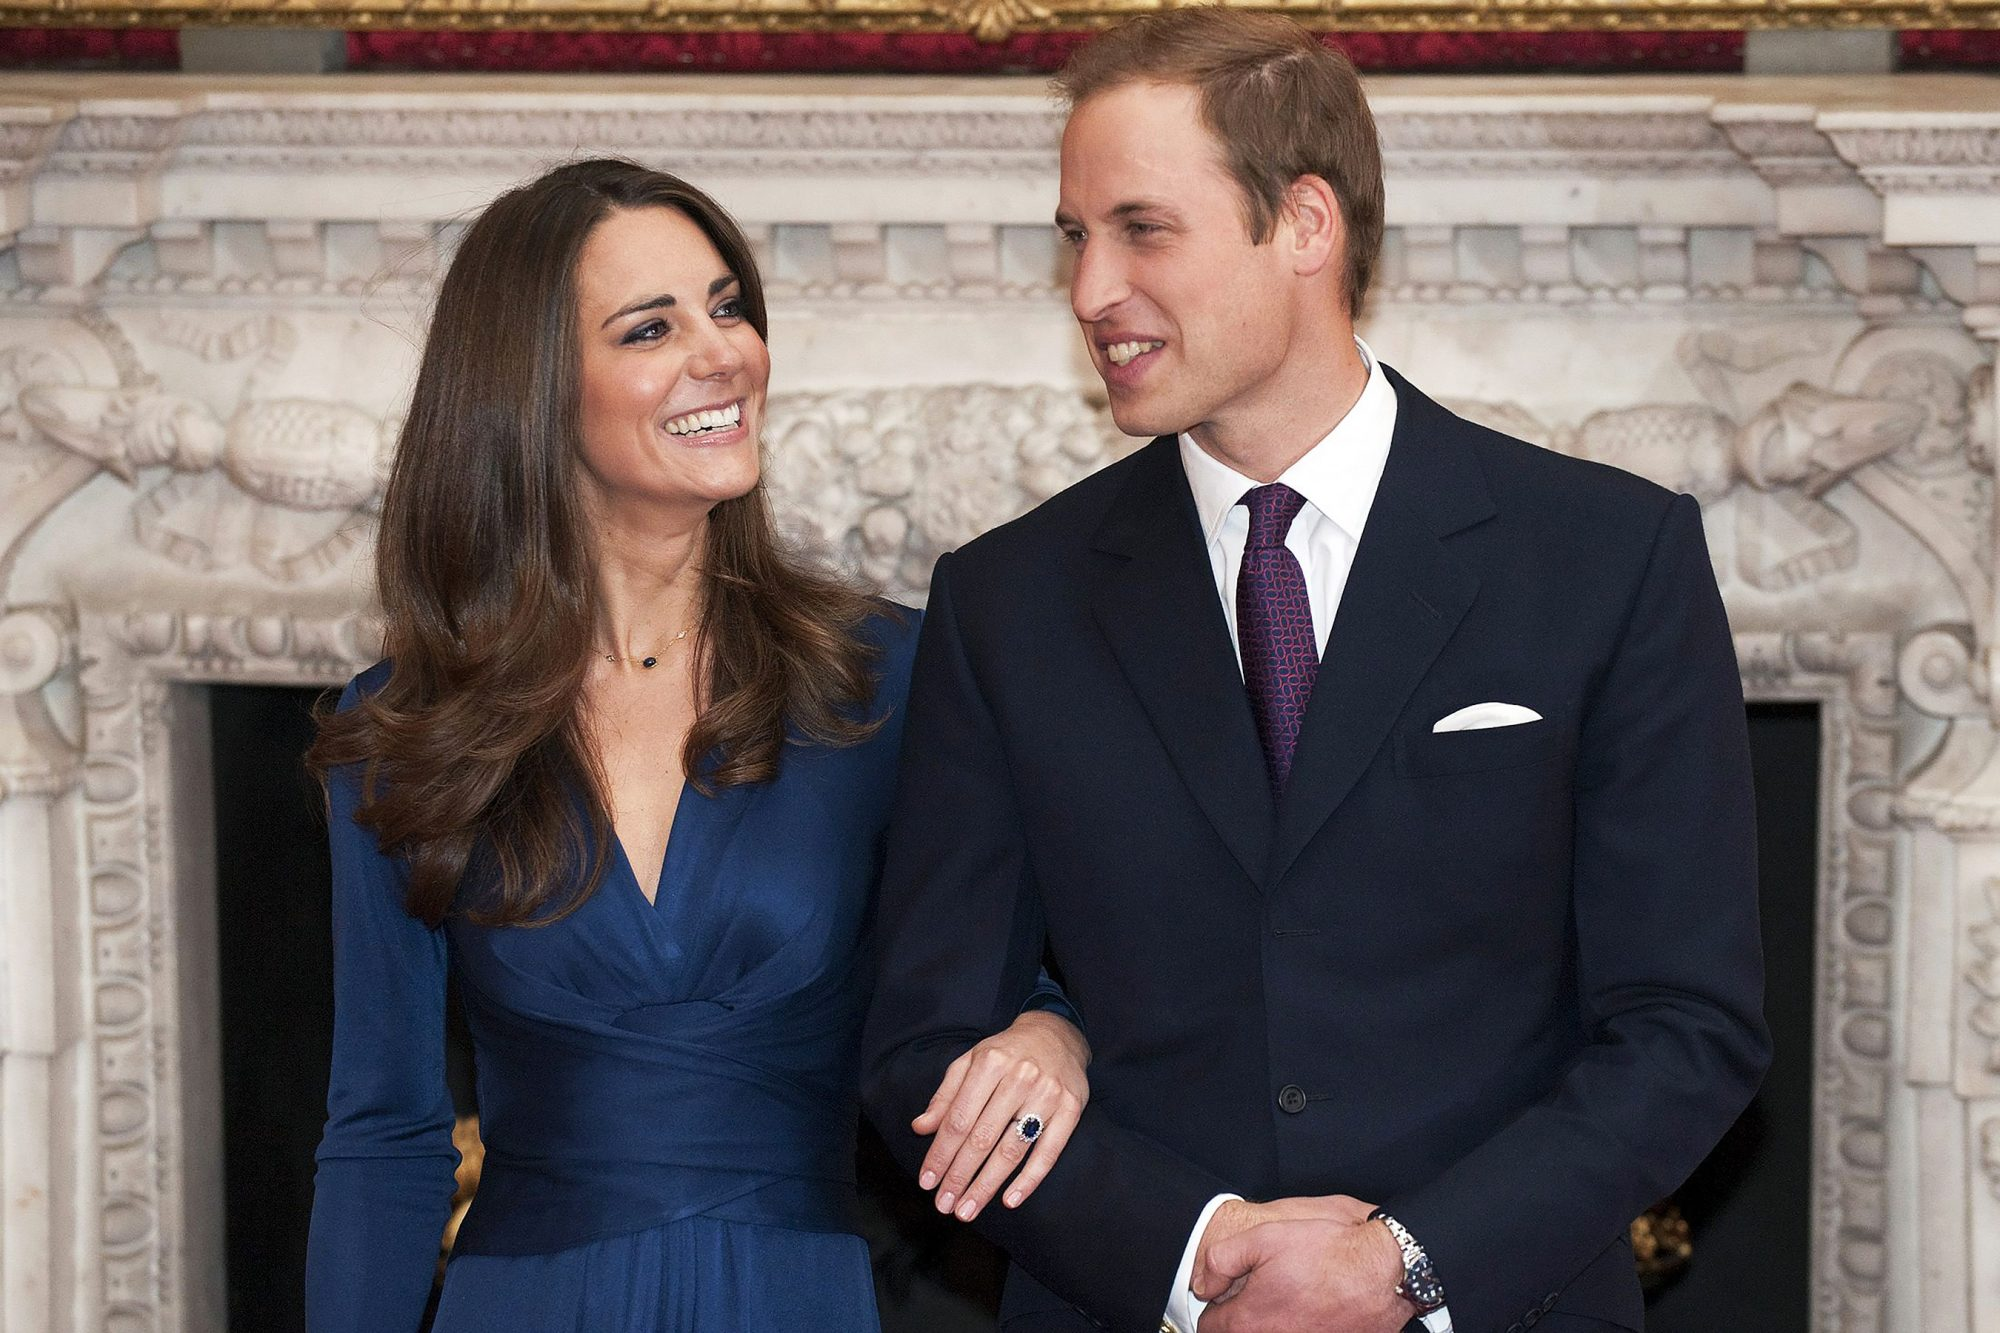 The Engagement of Prince William and Kate Middleton photocall, State Rooms, St James's Palace, London, Britain - 16 Nov 2010